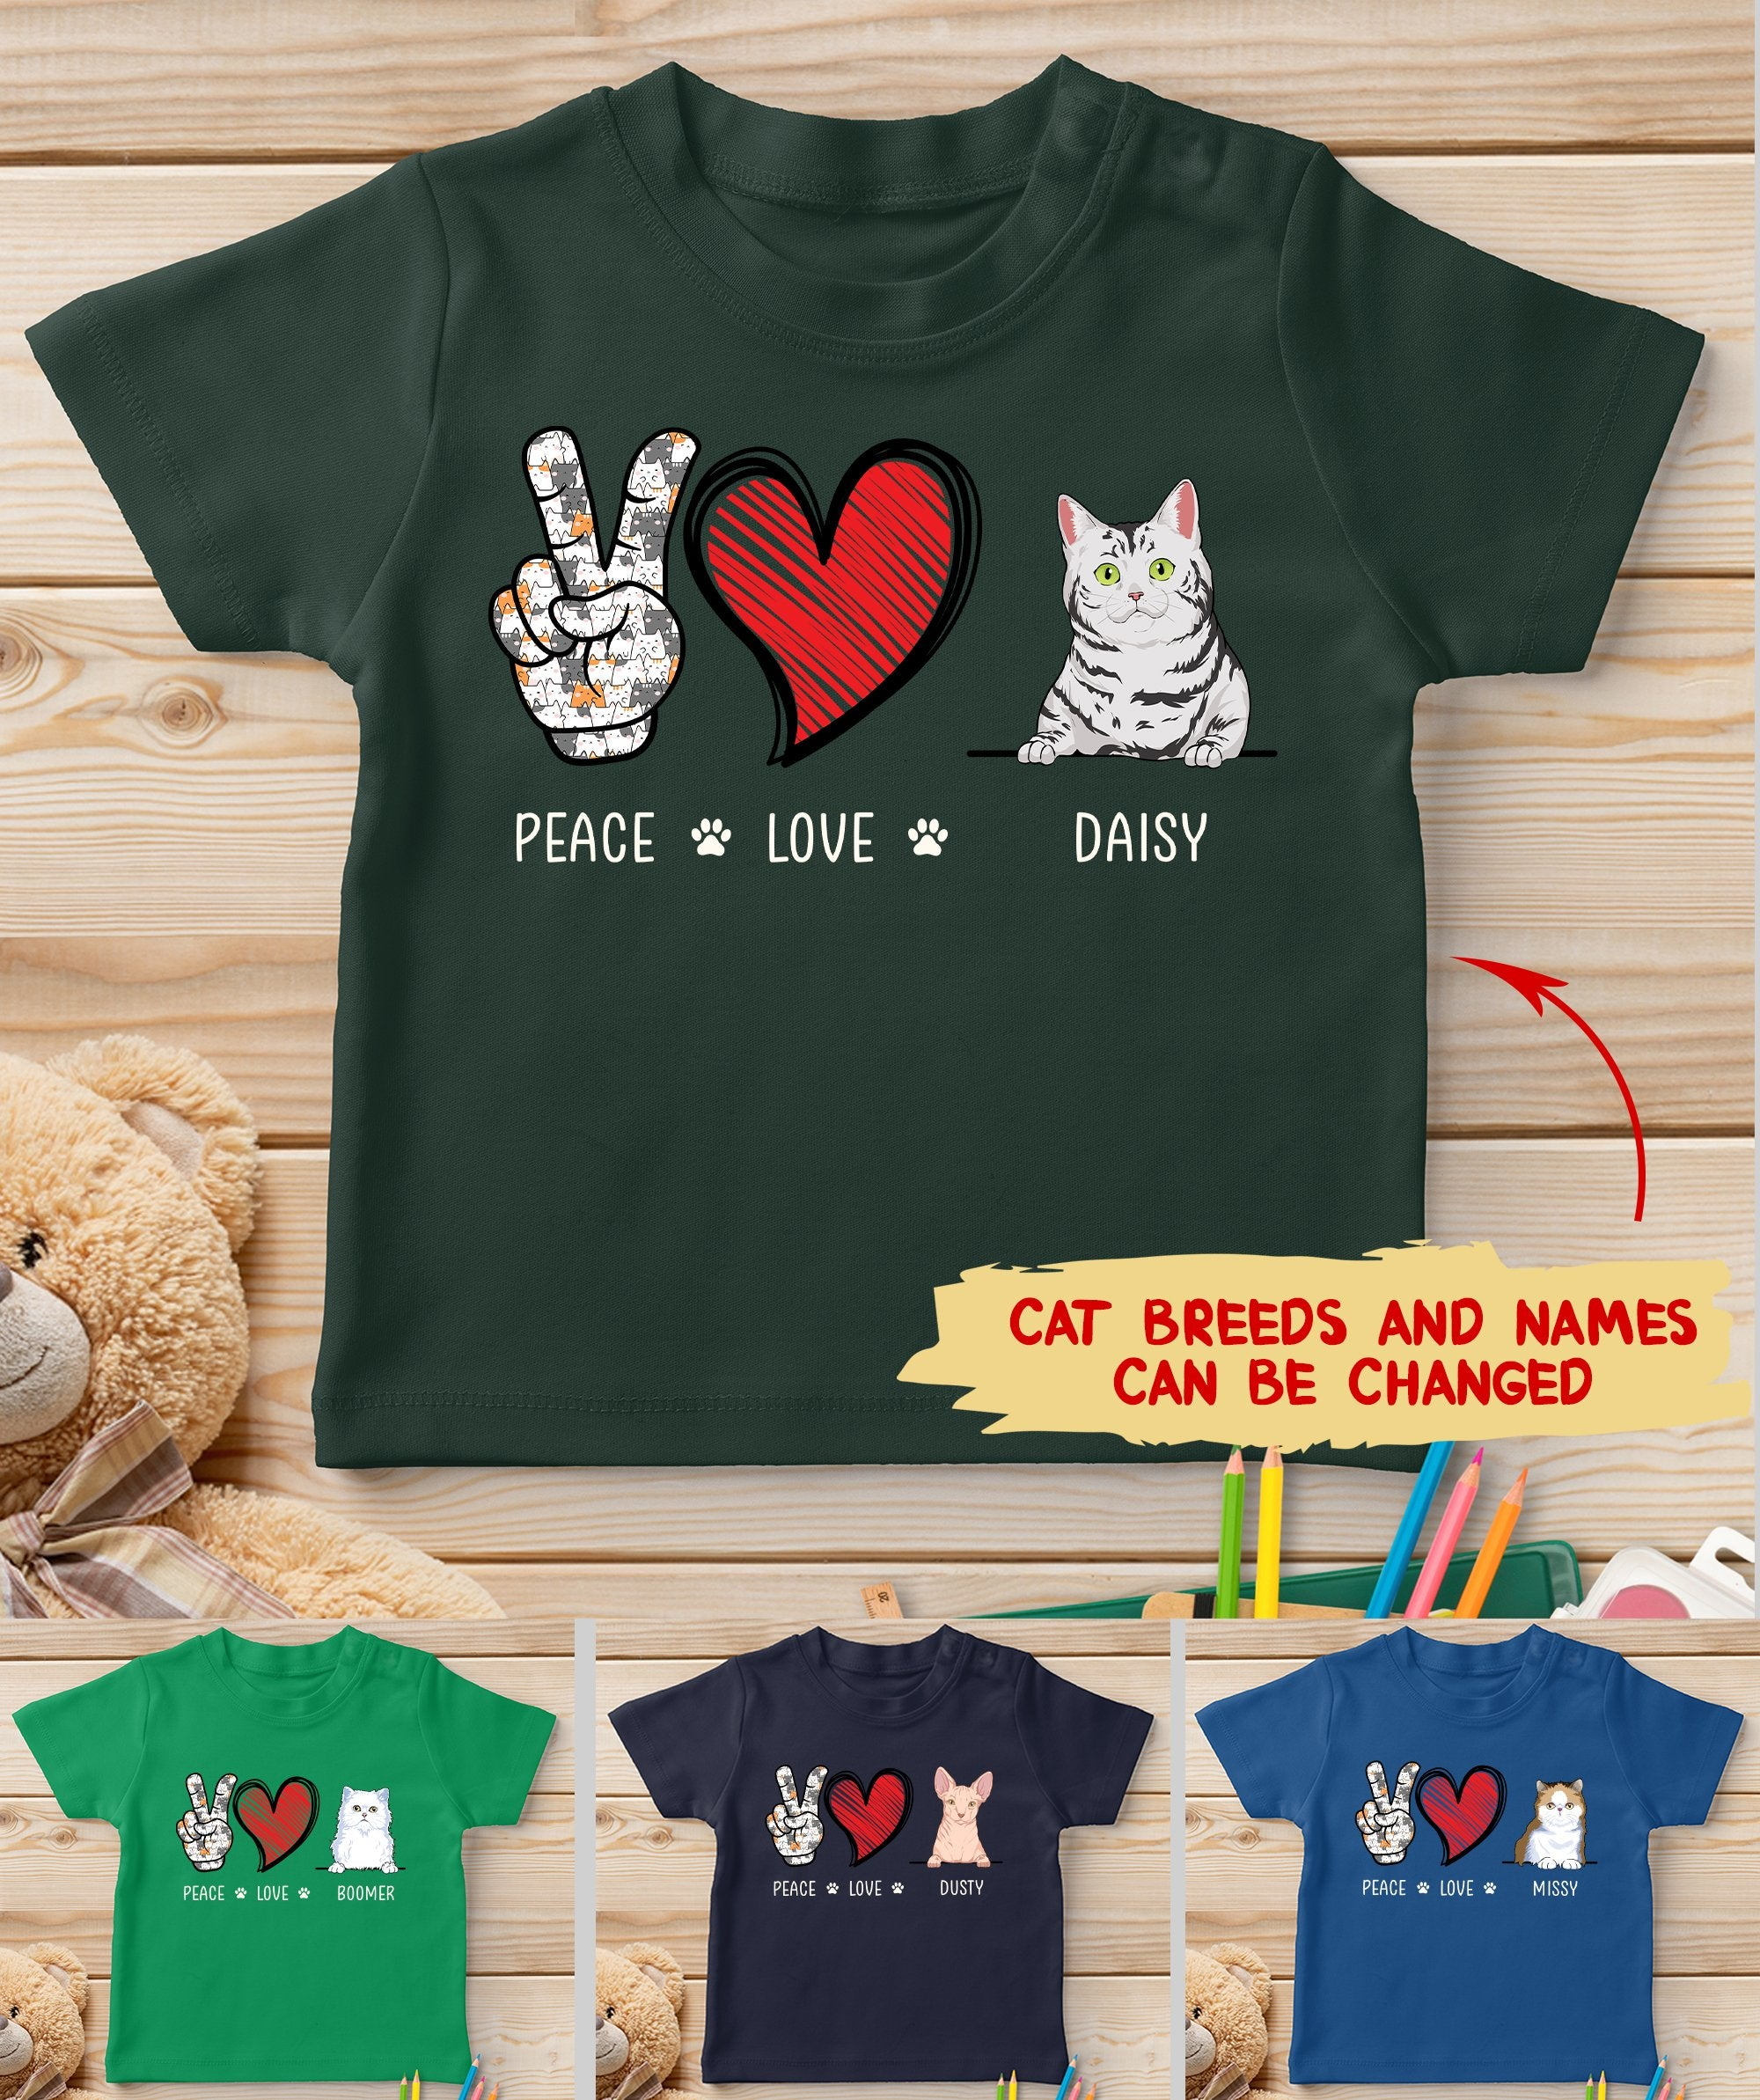 Peace Love Cat - Personalized Custom Youth T-shirt